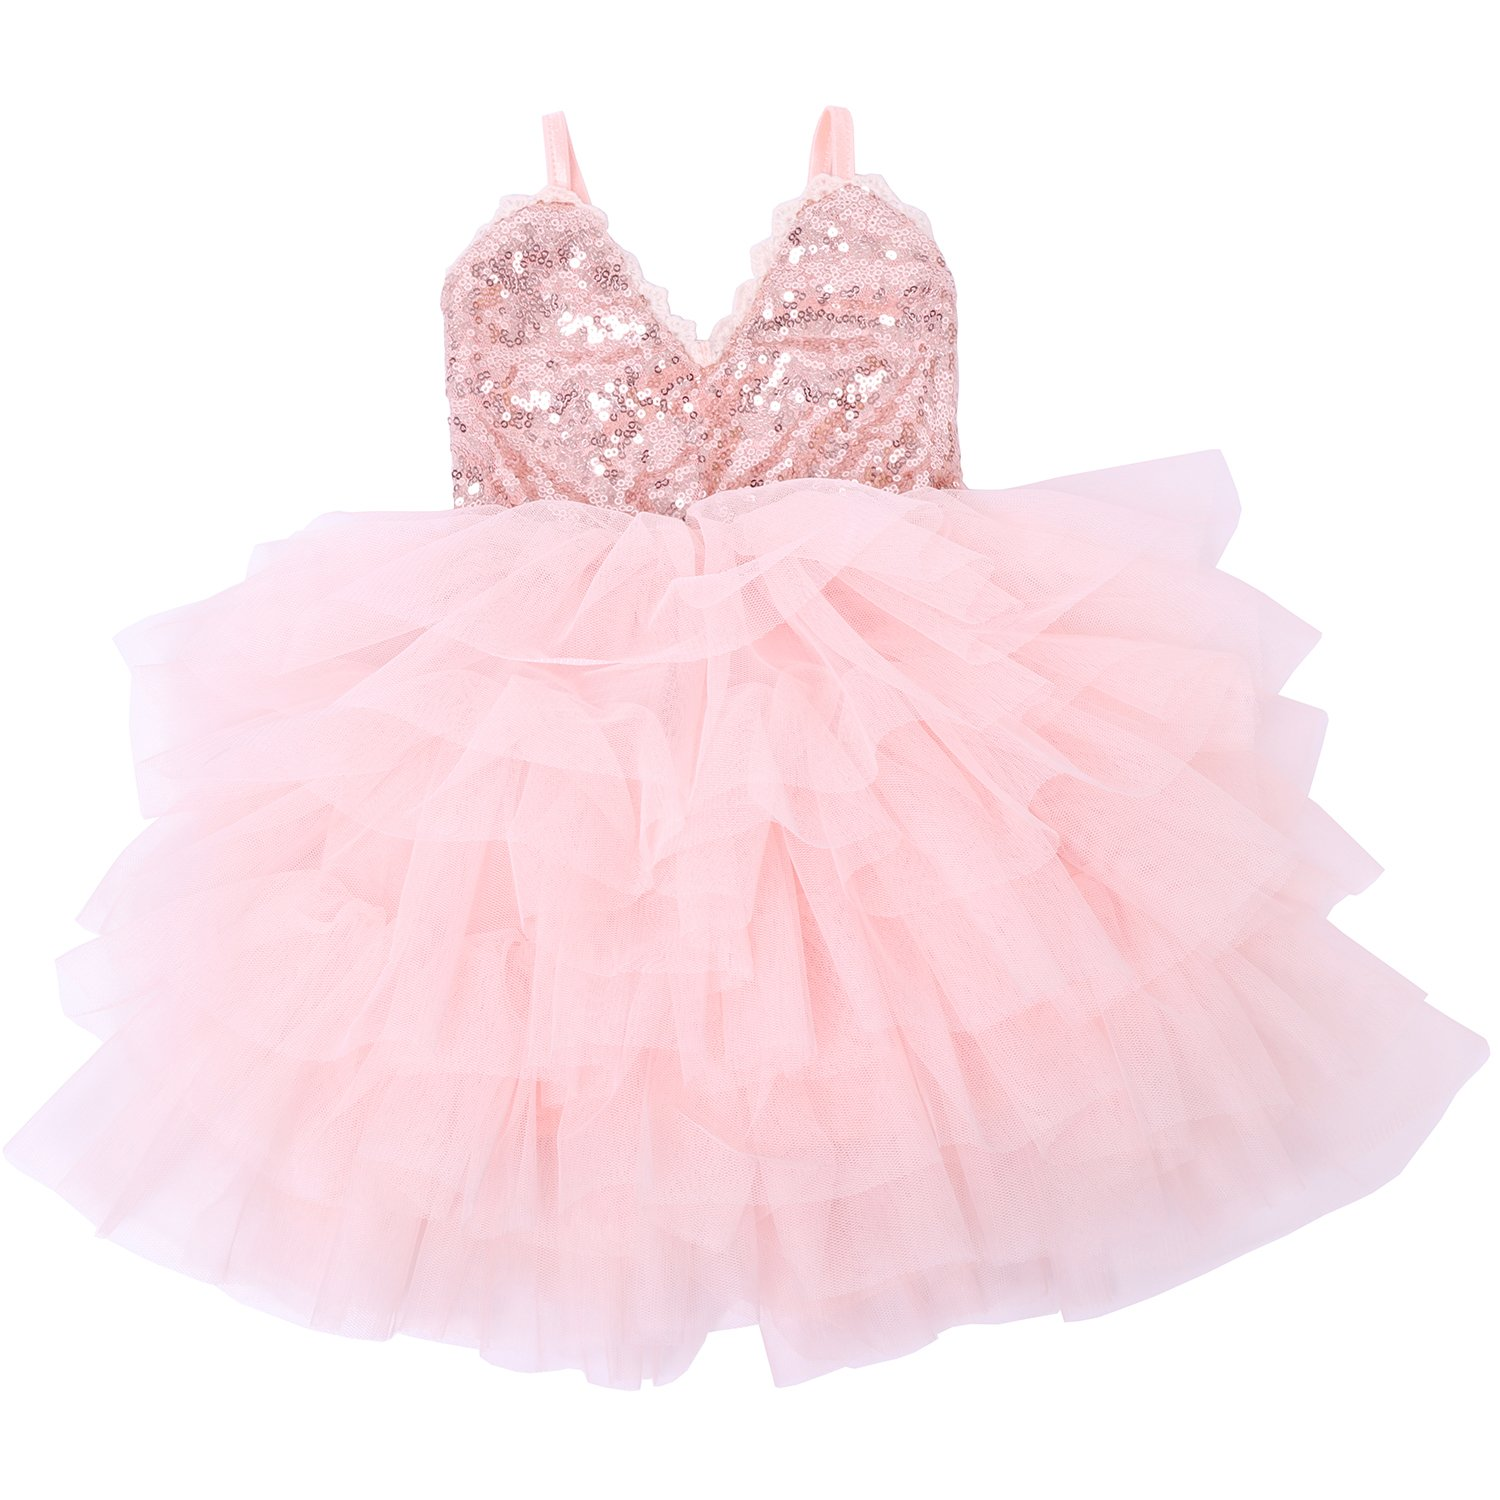 30e2f9284a8 Amazon.com  Cilucu Girls Dress Toddler Kids Party Dress Sequin Tutu Pageant  Lace Dresses Gown for Flower Girl Baby Rose Gold Pink Peach  Clothing